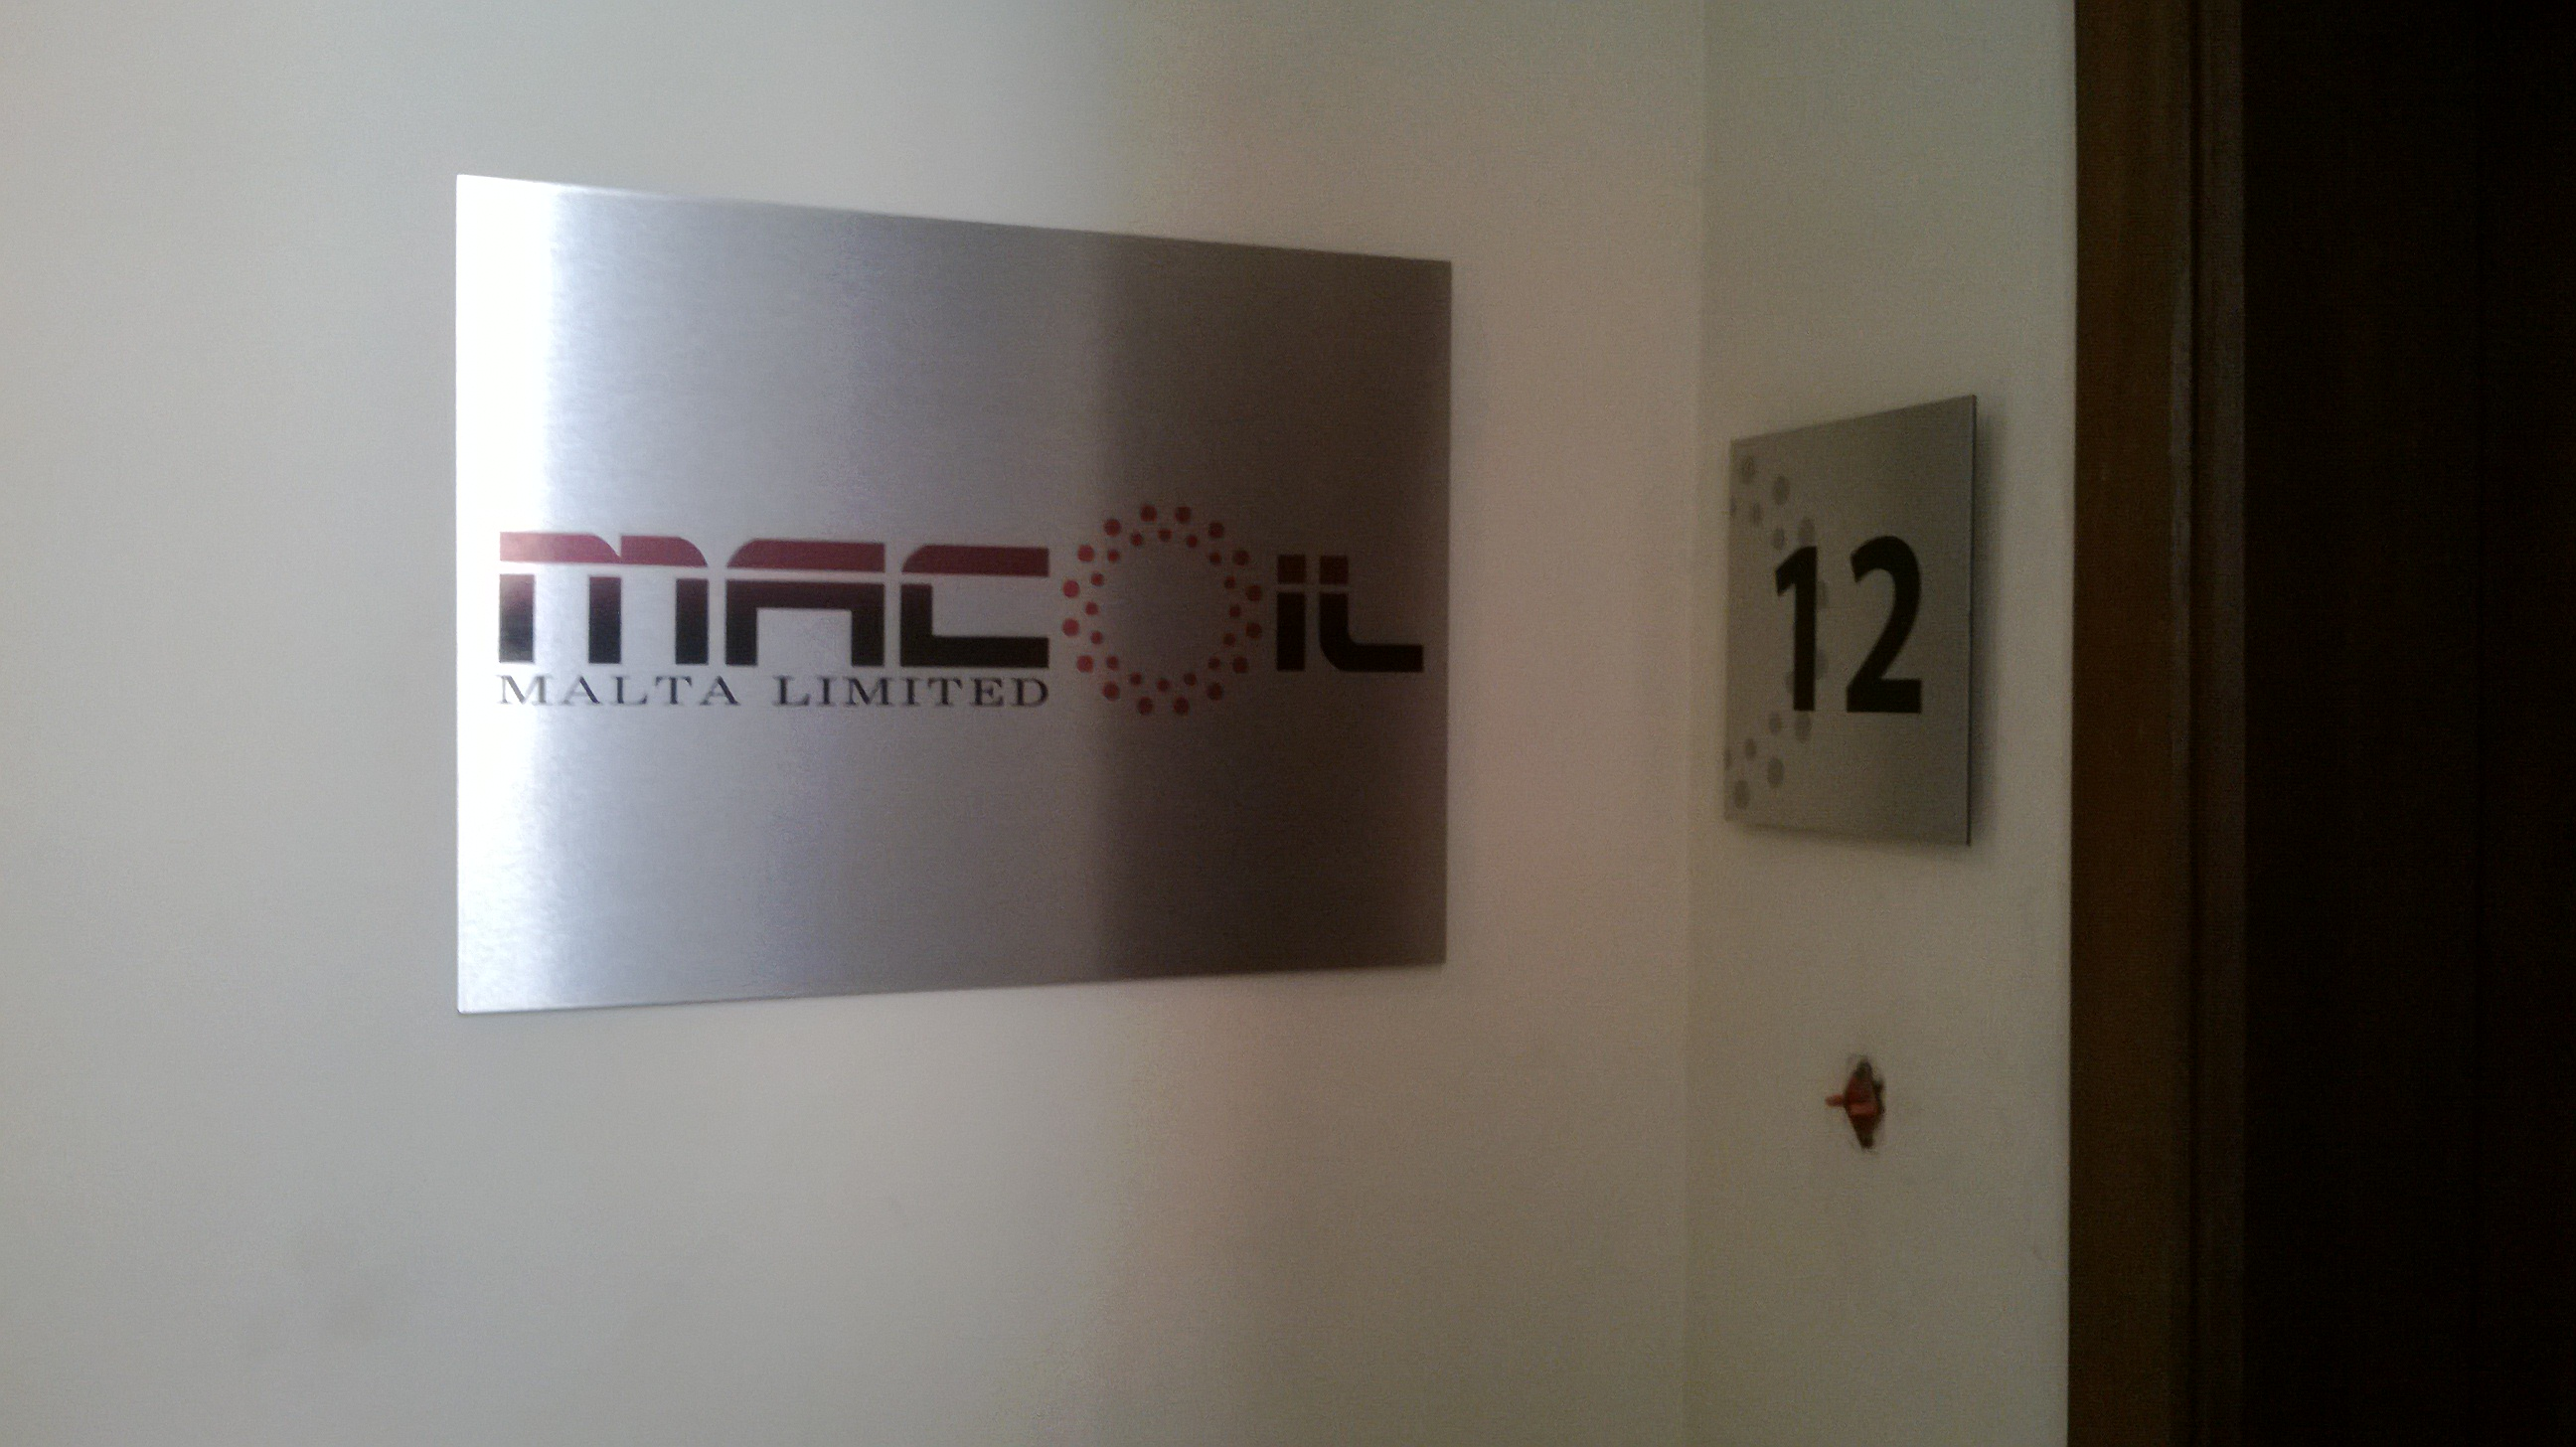 Macoil Malta Ltd. office sign